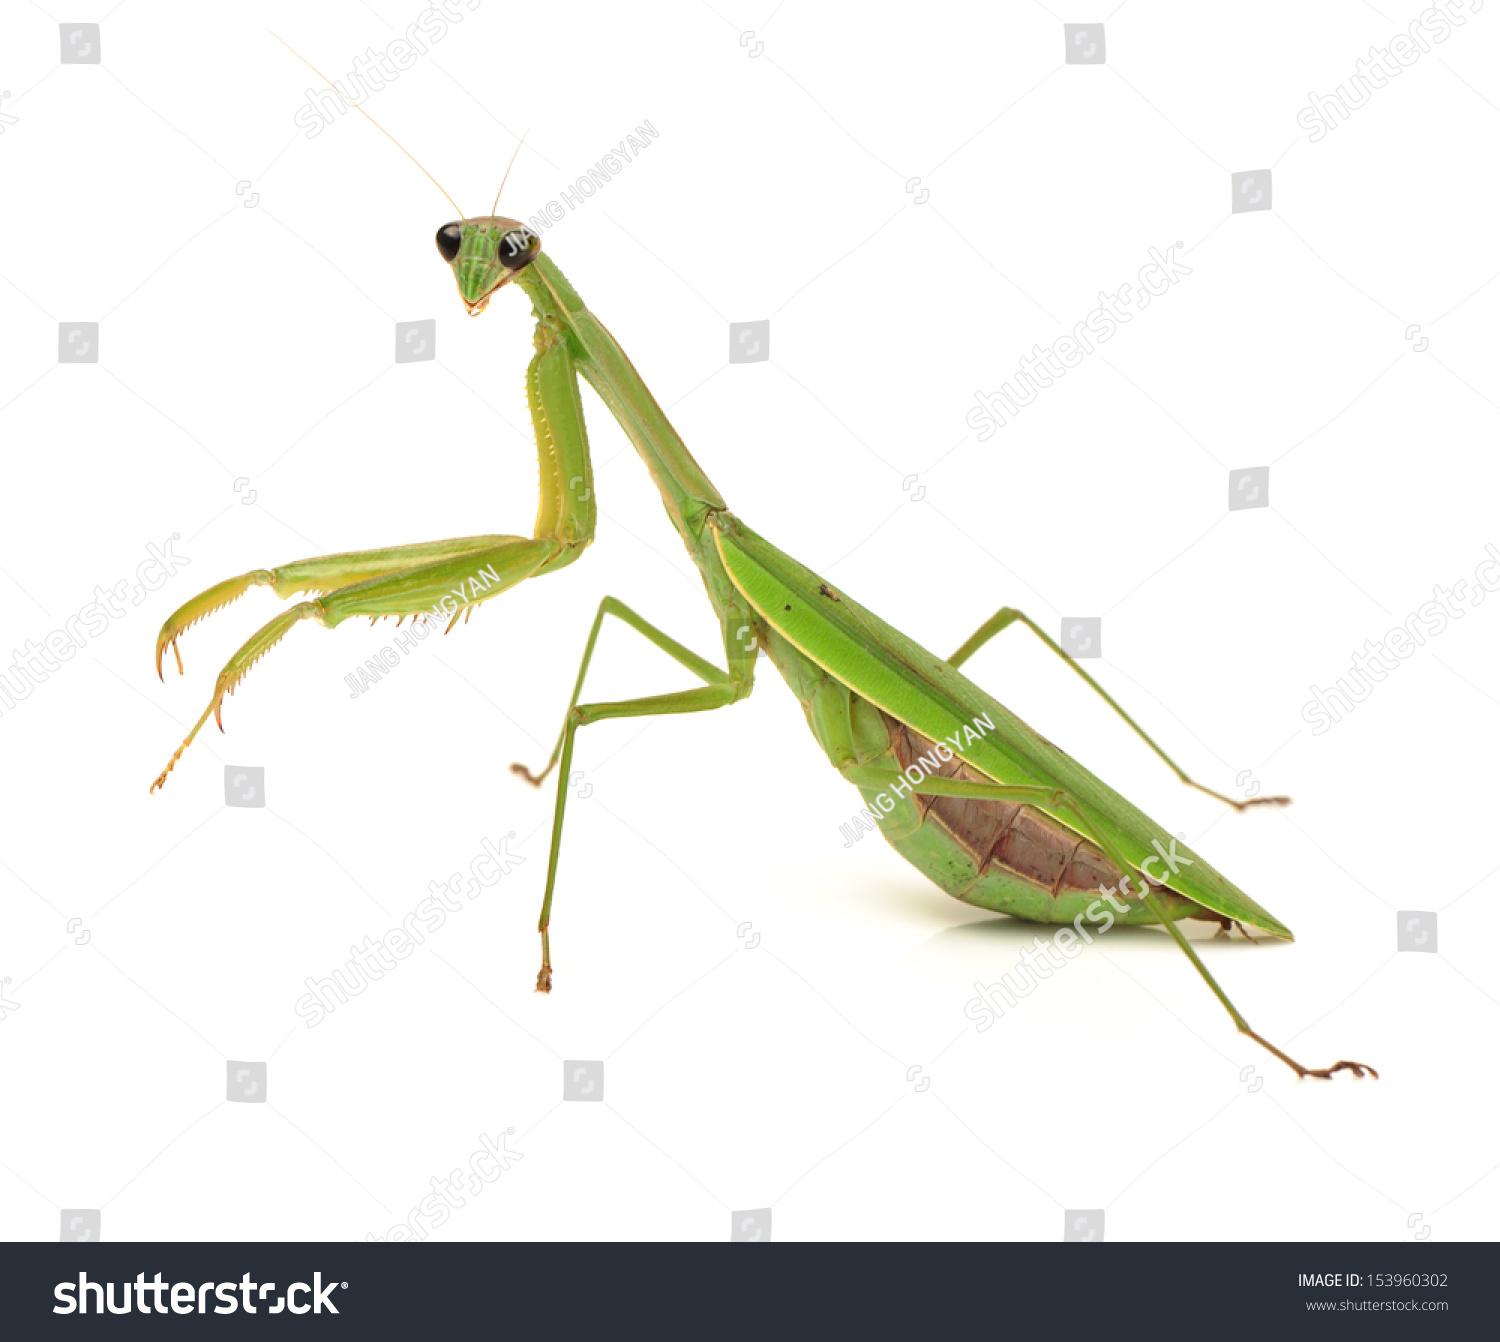 the background of the praying mantis